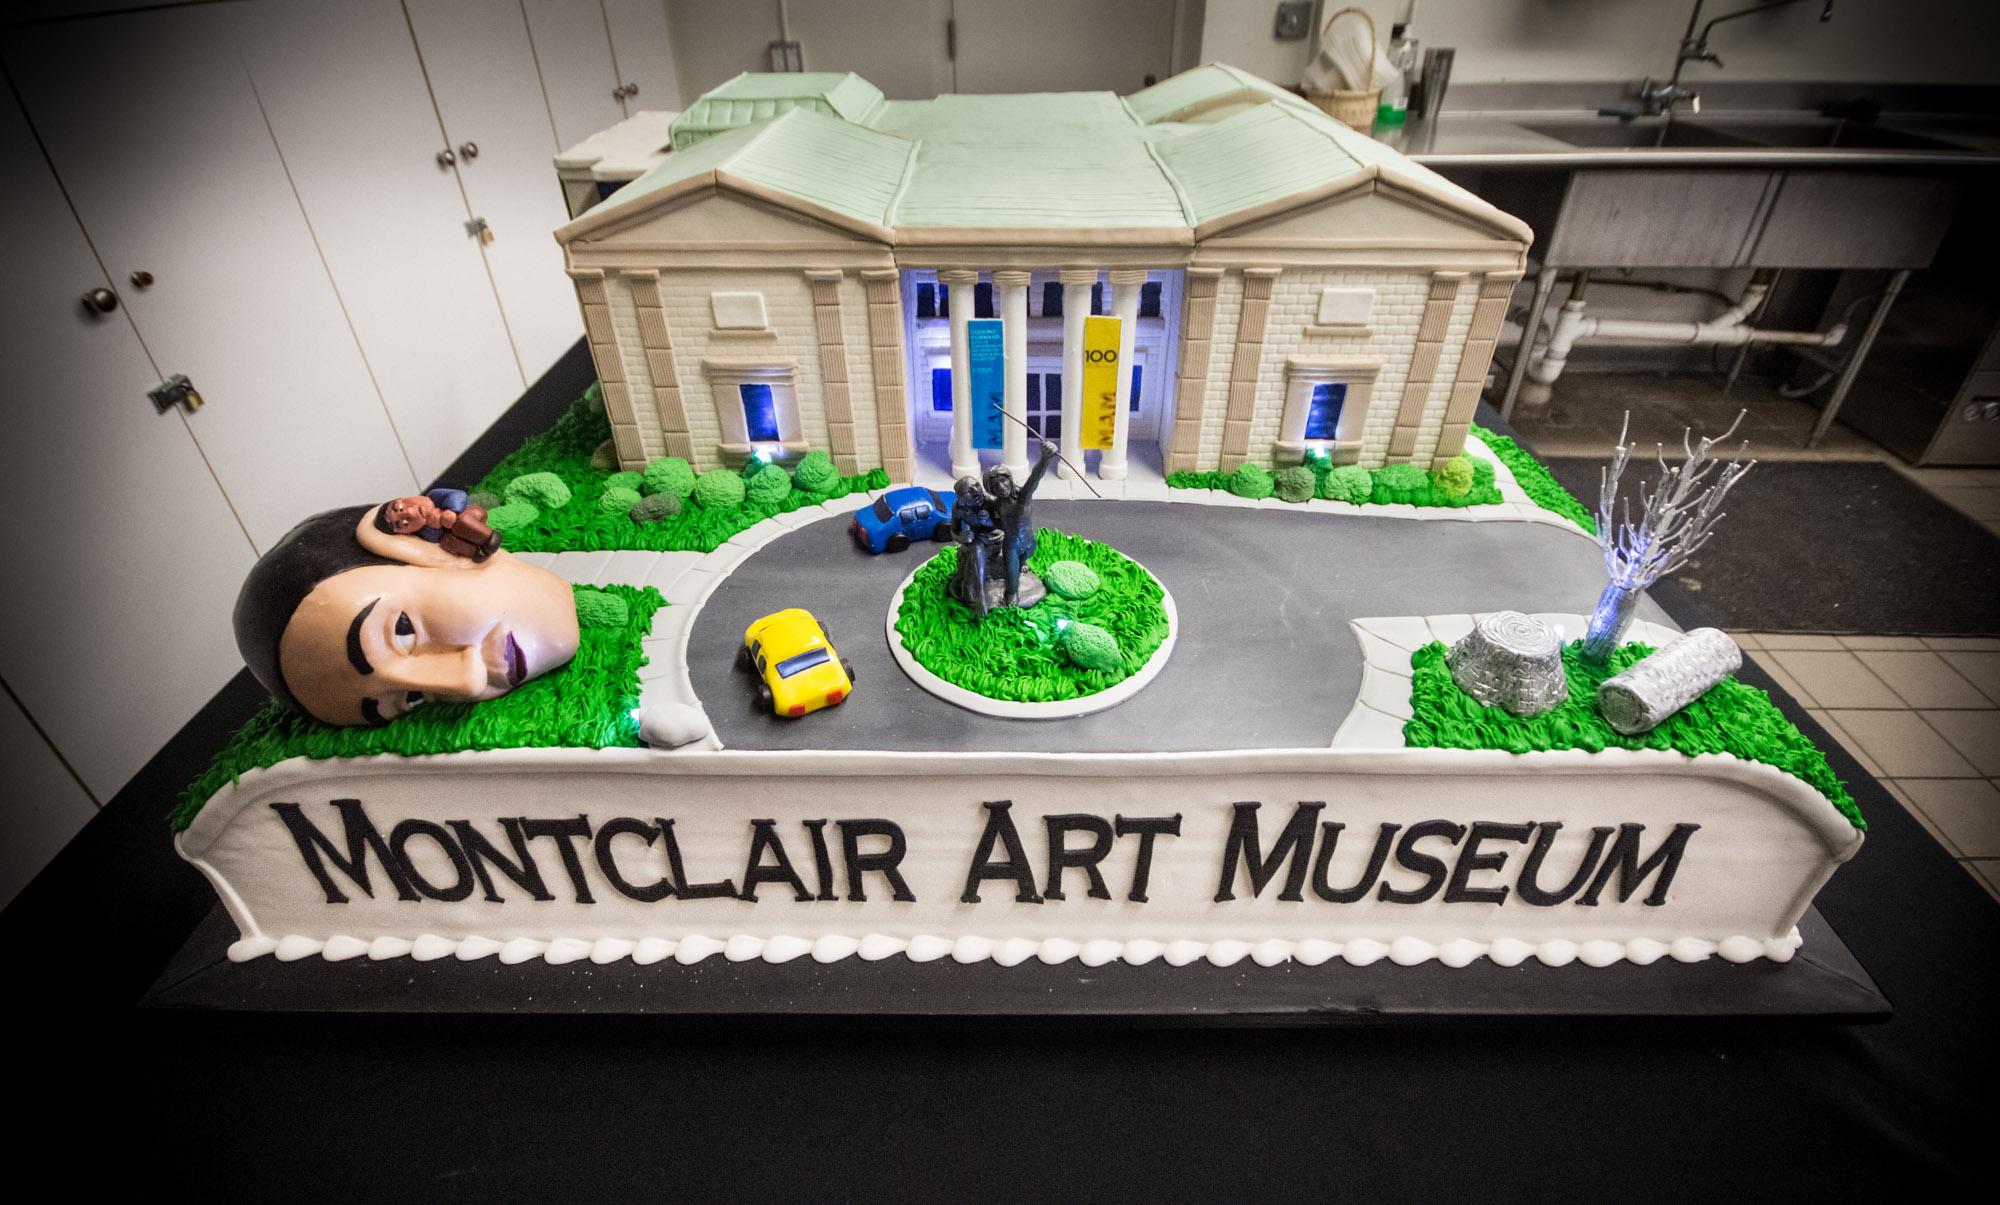 Montclair Art Museum celebrated its 100 years with a Centennial cake